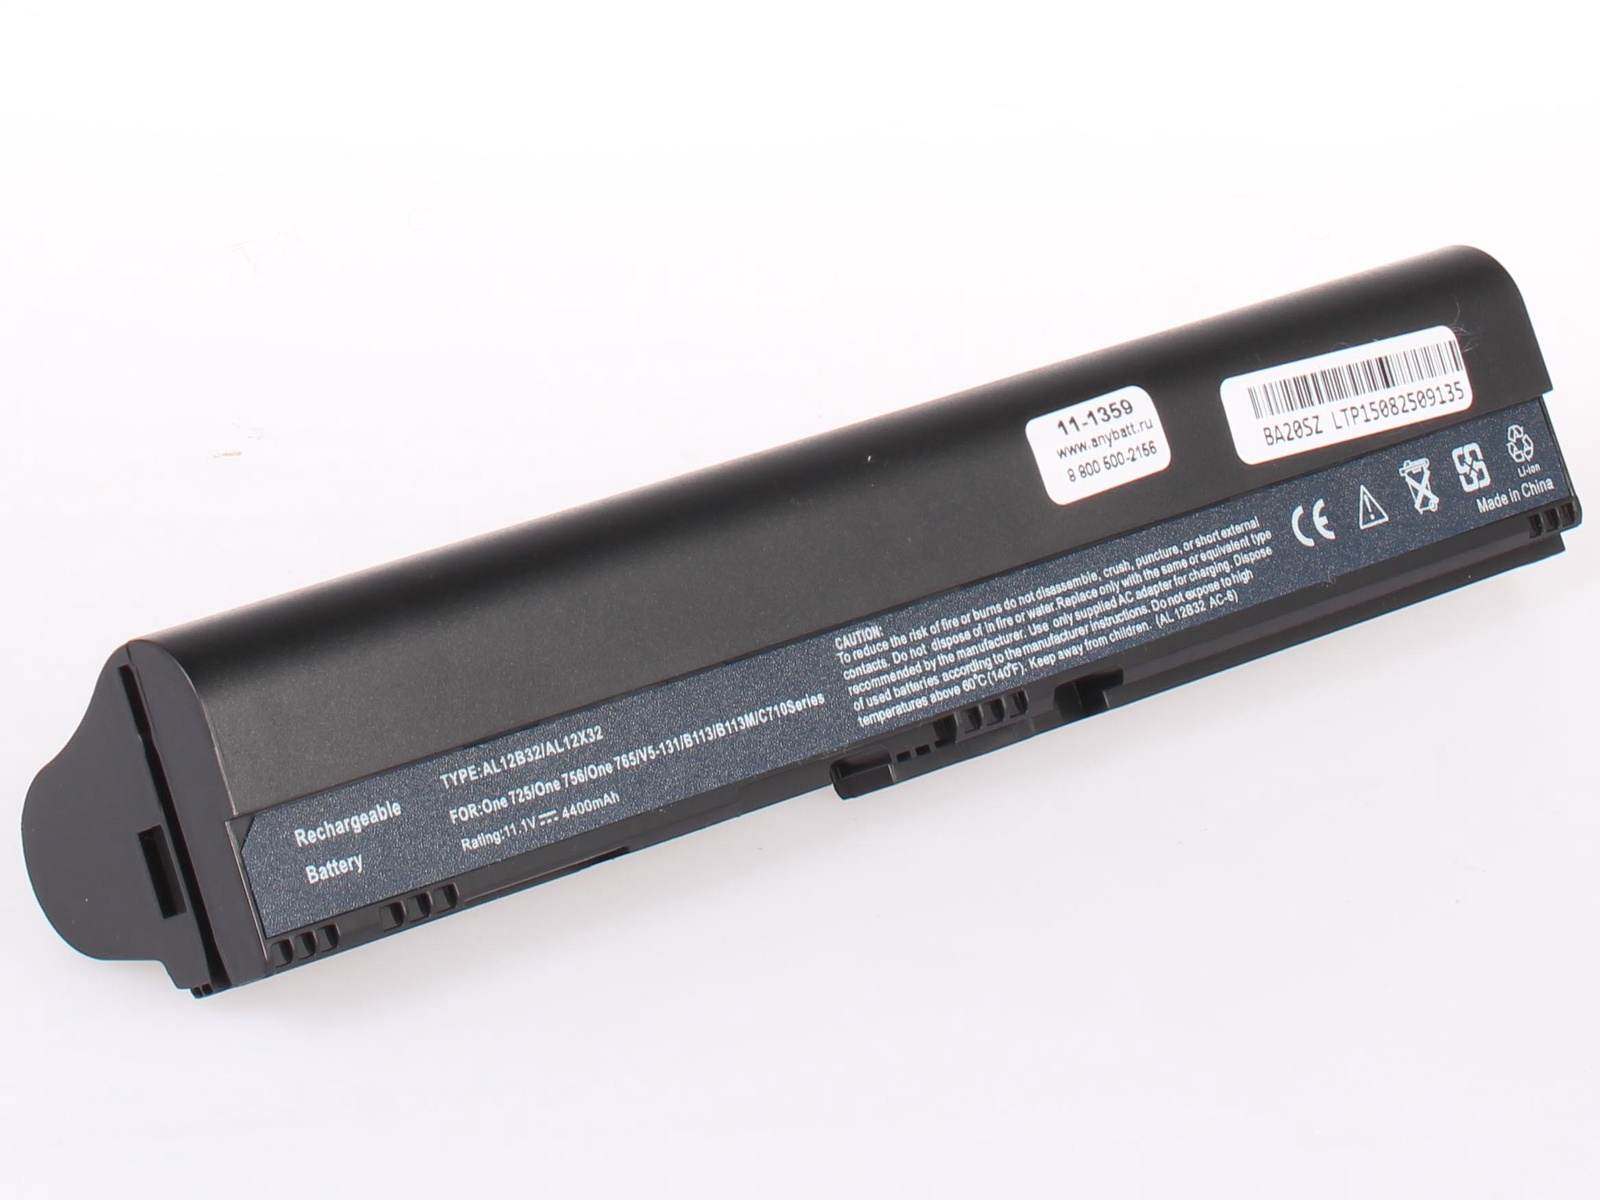 Аккумулятор для ноутбука AnyBatt для Acer Aspire V5-121-C72G32n, Aspire V5-571-323b4G32Mass, Aspire One AO756-877B1bb, Aspire One 756-877B1ss, Aspire V5-571PGB-33214GB50Mass, Aspire V5-431P-987B4G50Ma, Aspire V5-171-53314G50ass free shipping for acer aspire v5 571 v5 571p v5 571pgb v5 531pg ms2361 assembly touch screen and display not with frame